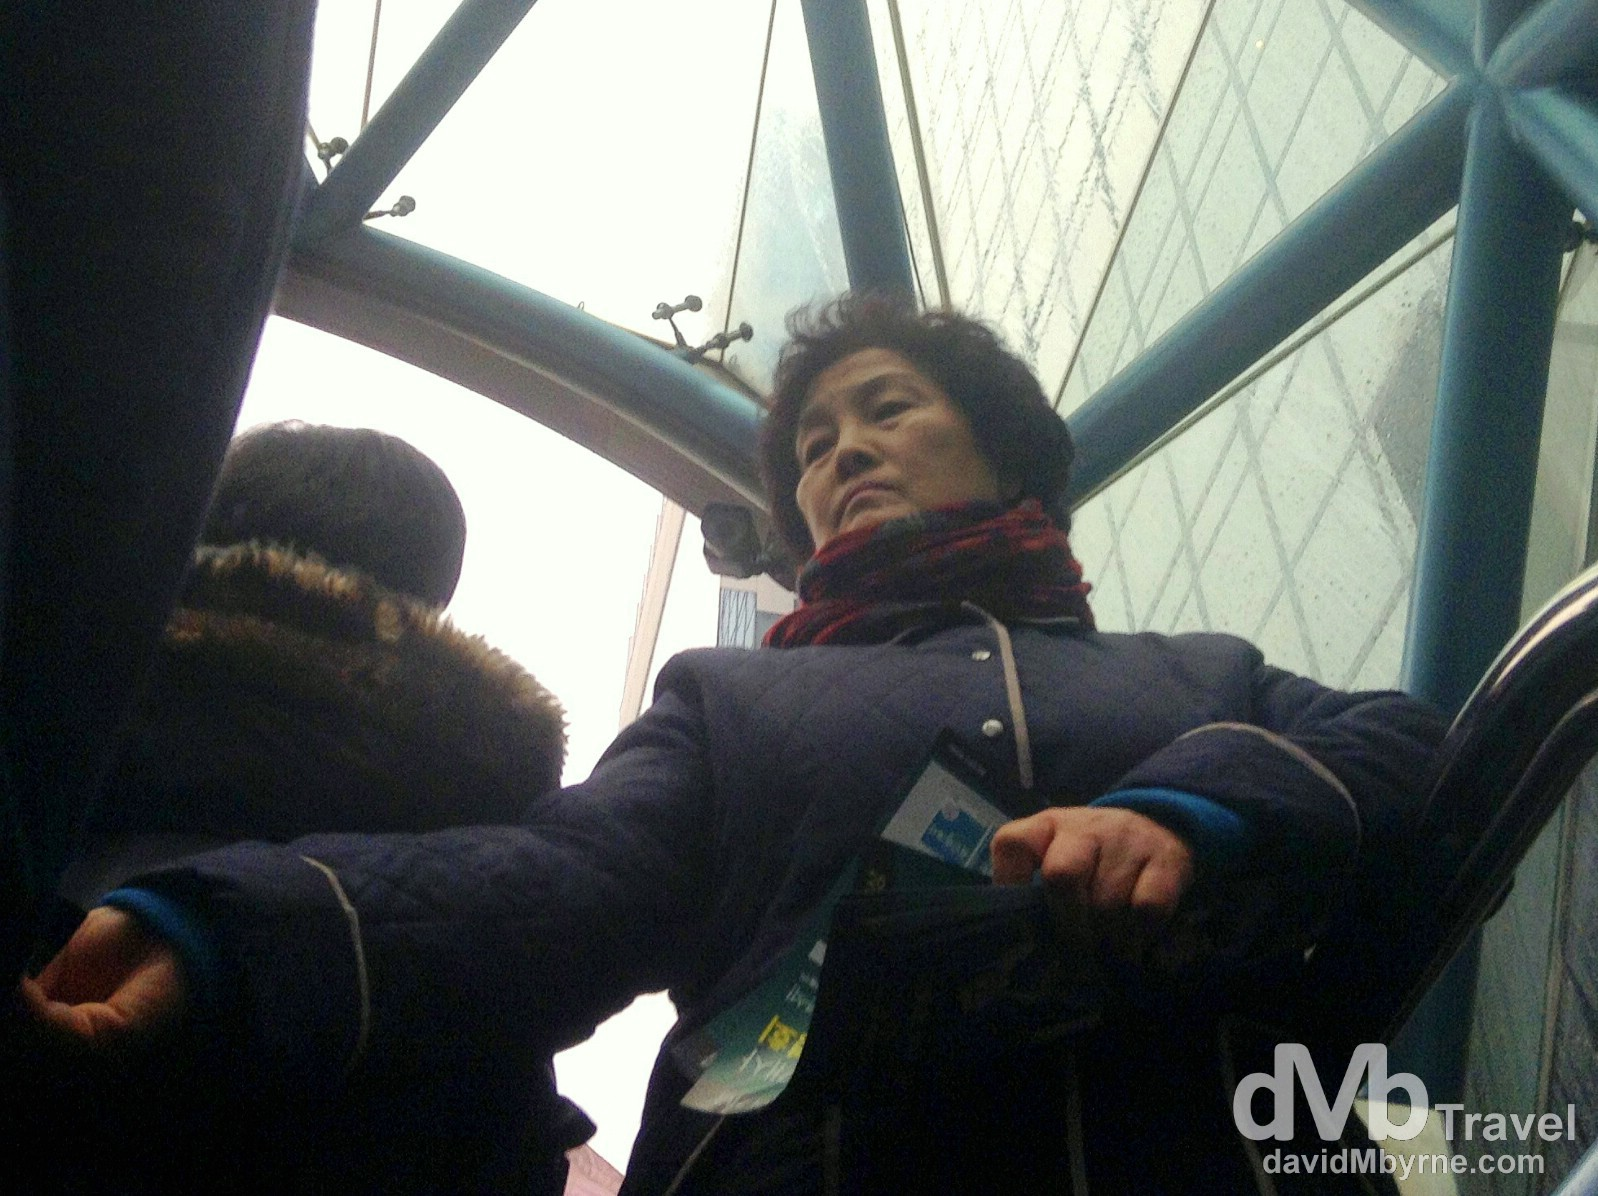 An Ajumma handing out flyers at exit 12 of Gangnam Station, Seoul, South Korea. January 25th 2014.